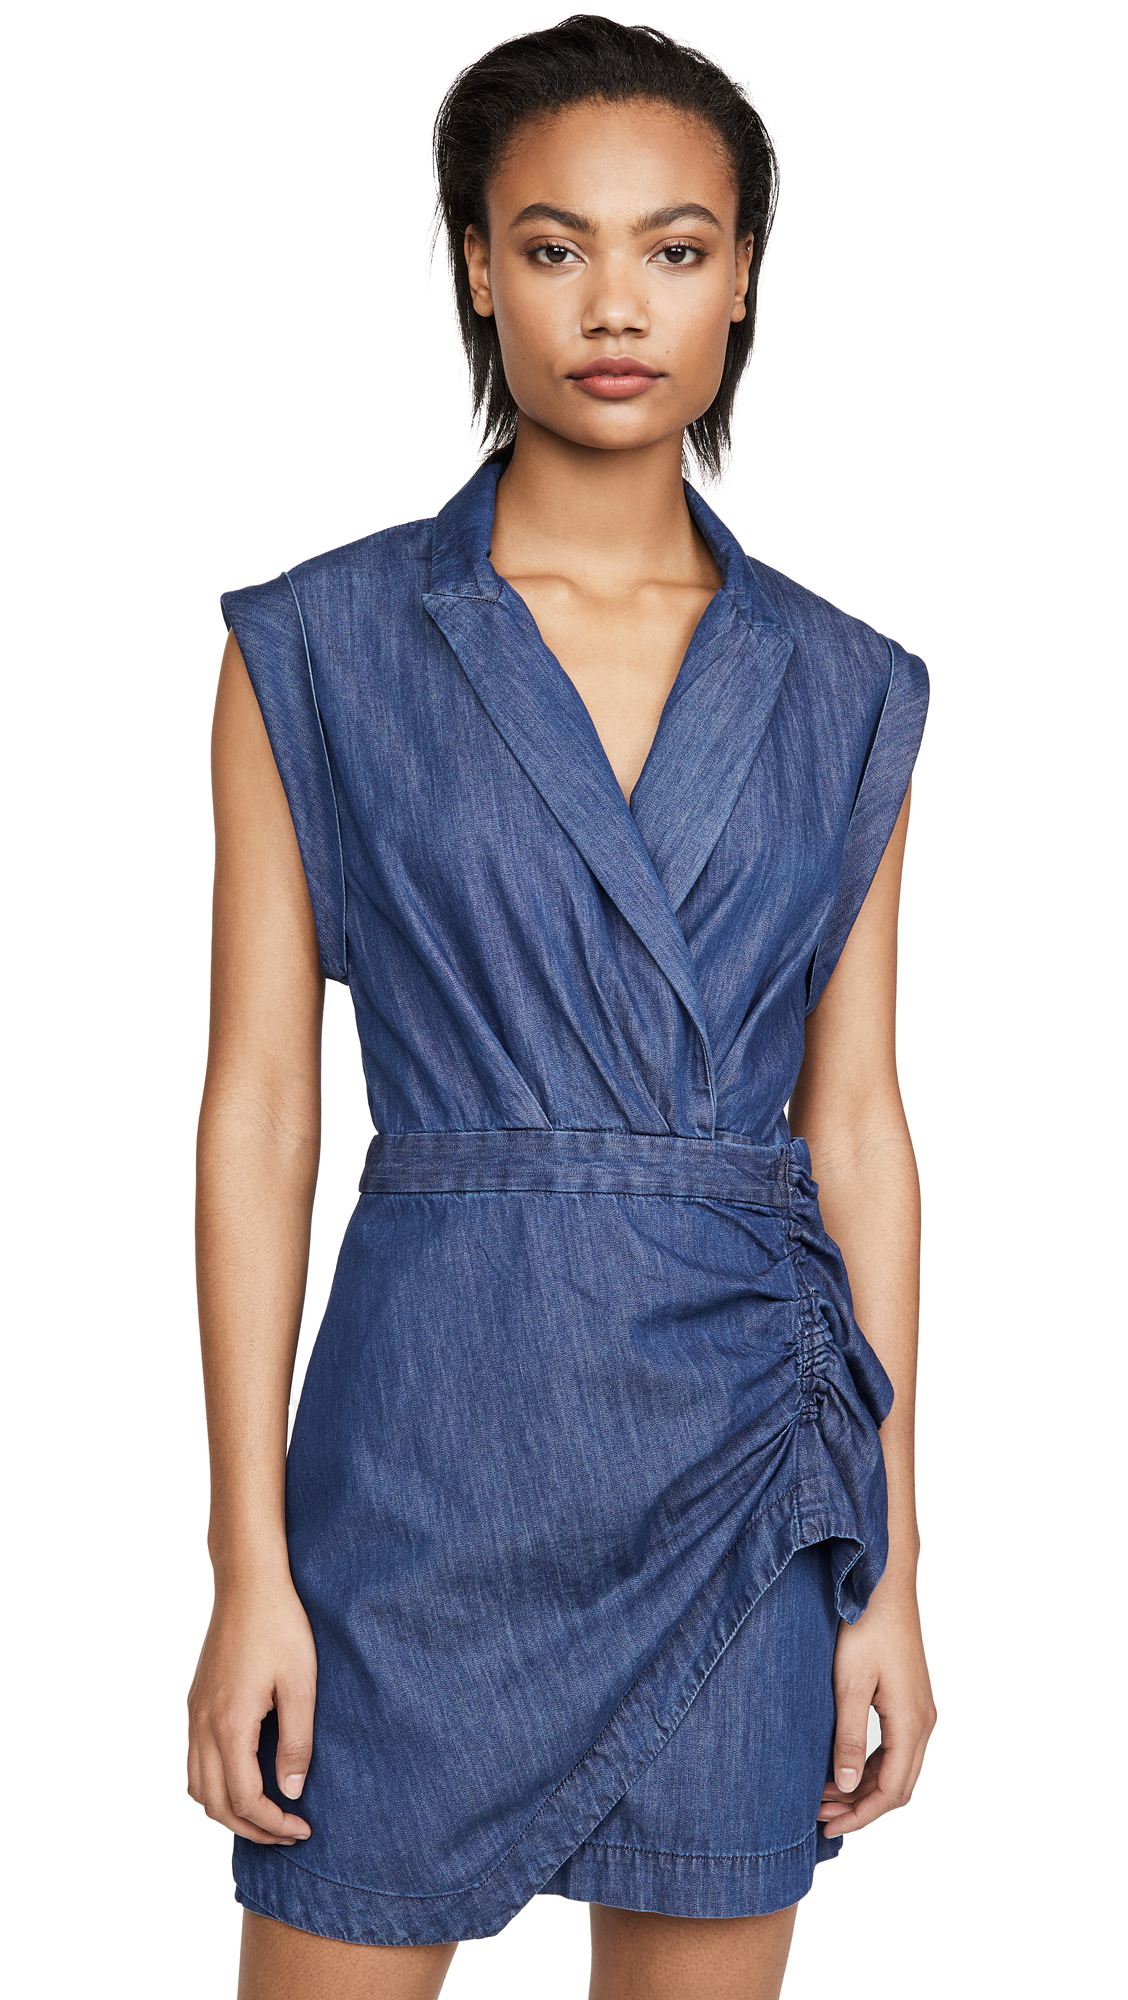 Buy 7 For All Mankind Ruffle Blazer Dress online beautiful 7 For All Mankind Clothing, Dresses